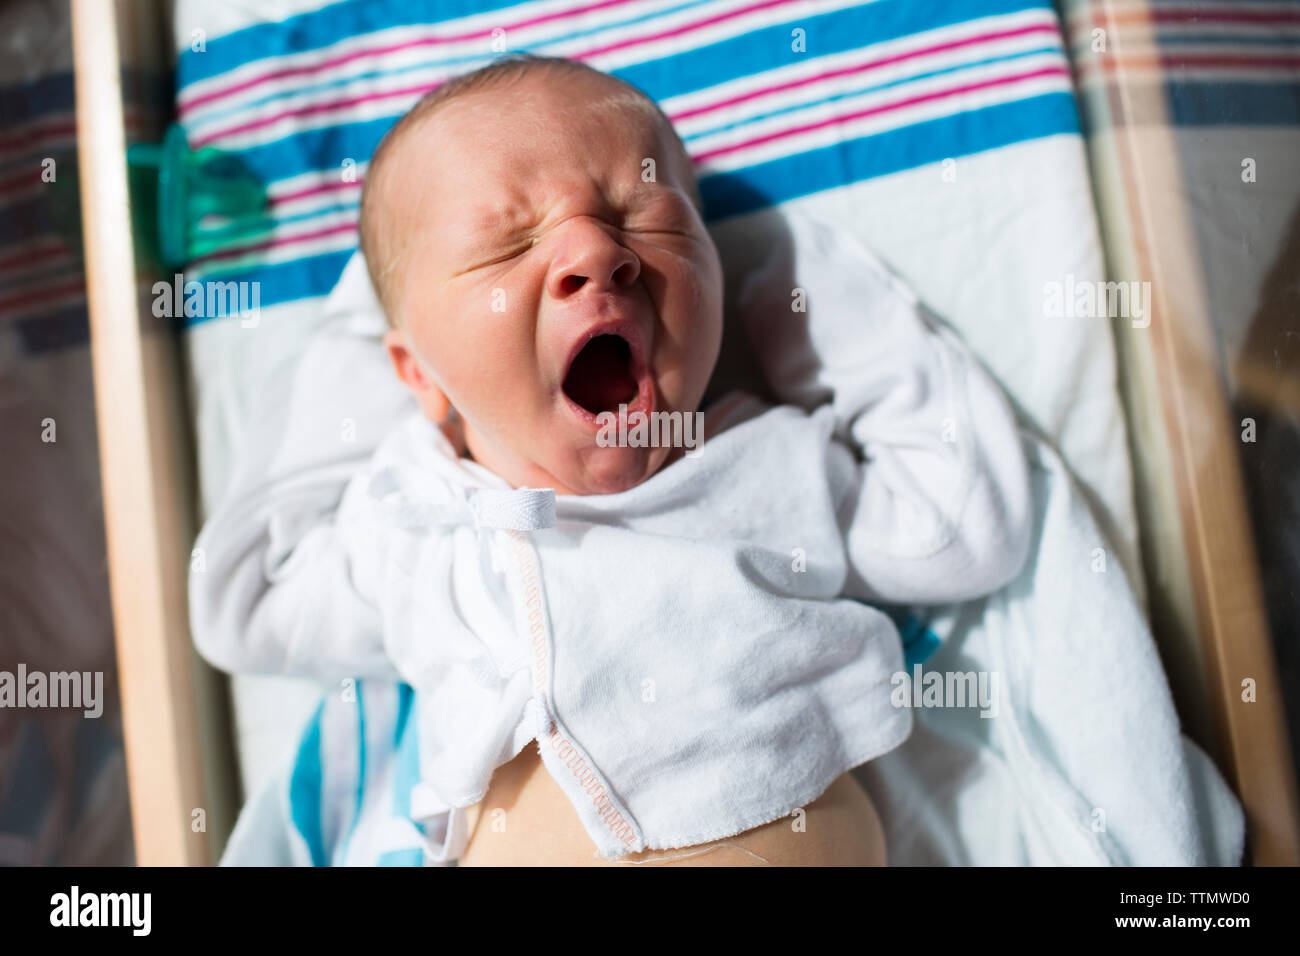 Close-up of baby boy yawning while sleeping in crib at hospital - Stock Image